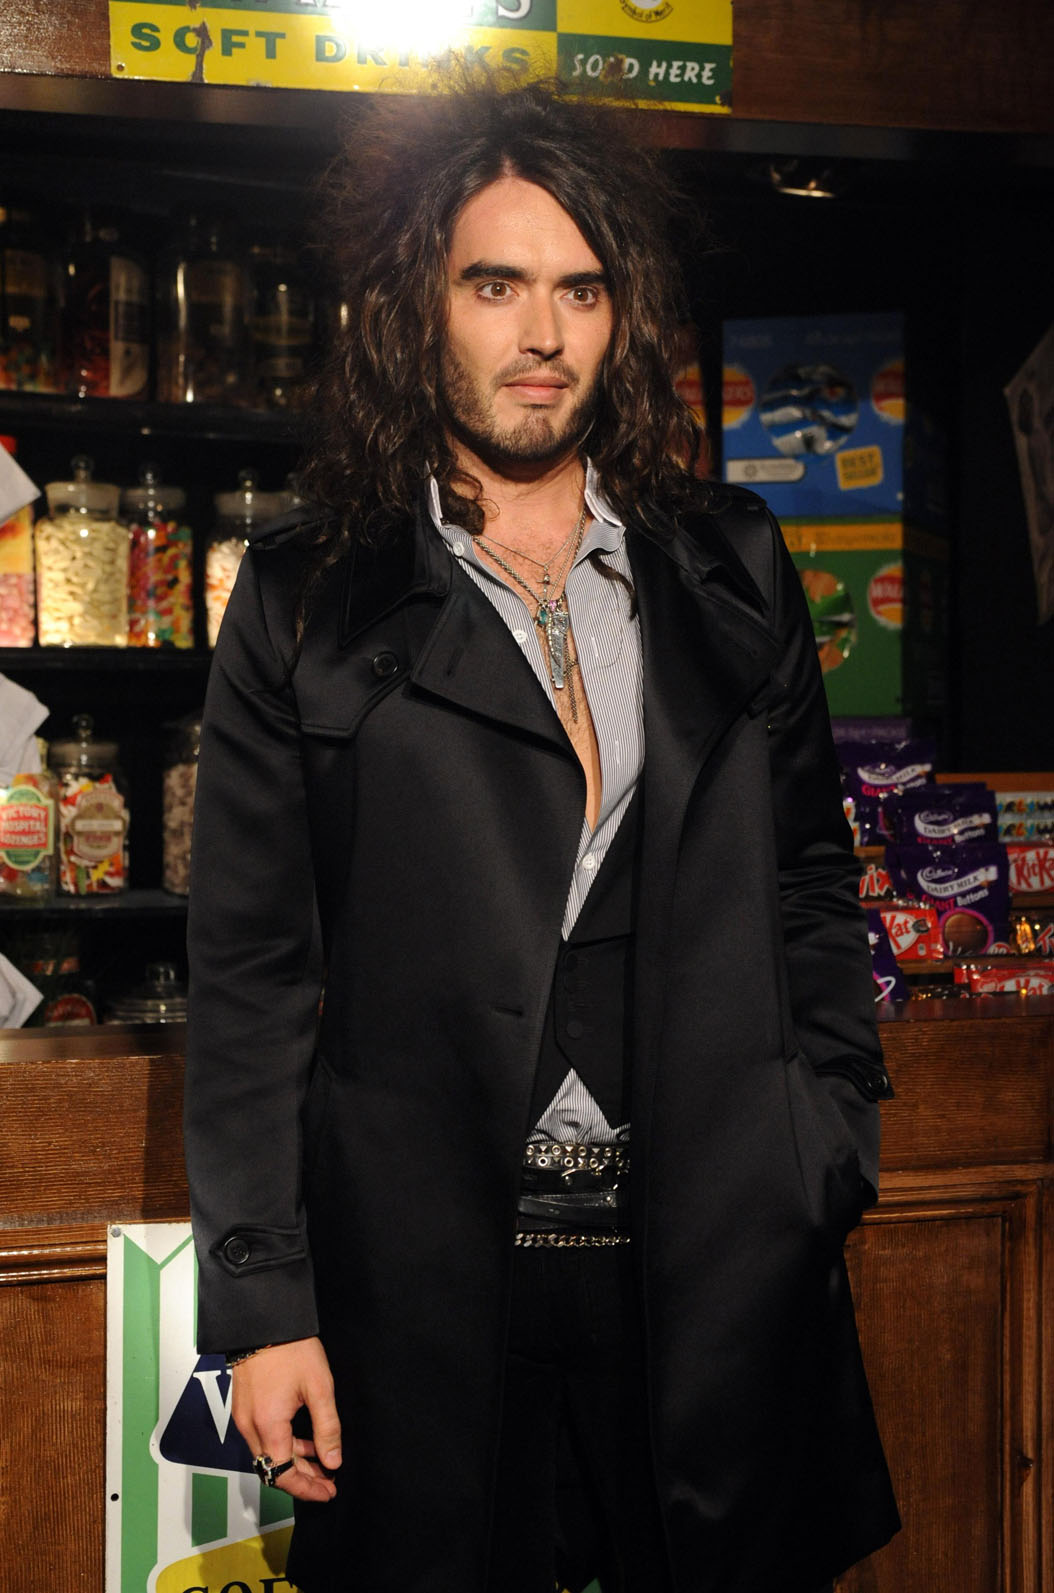 Russell Brand reveals... too much information